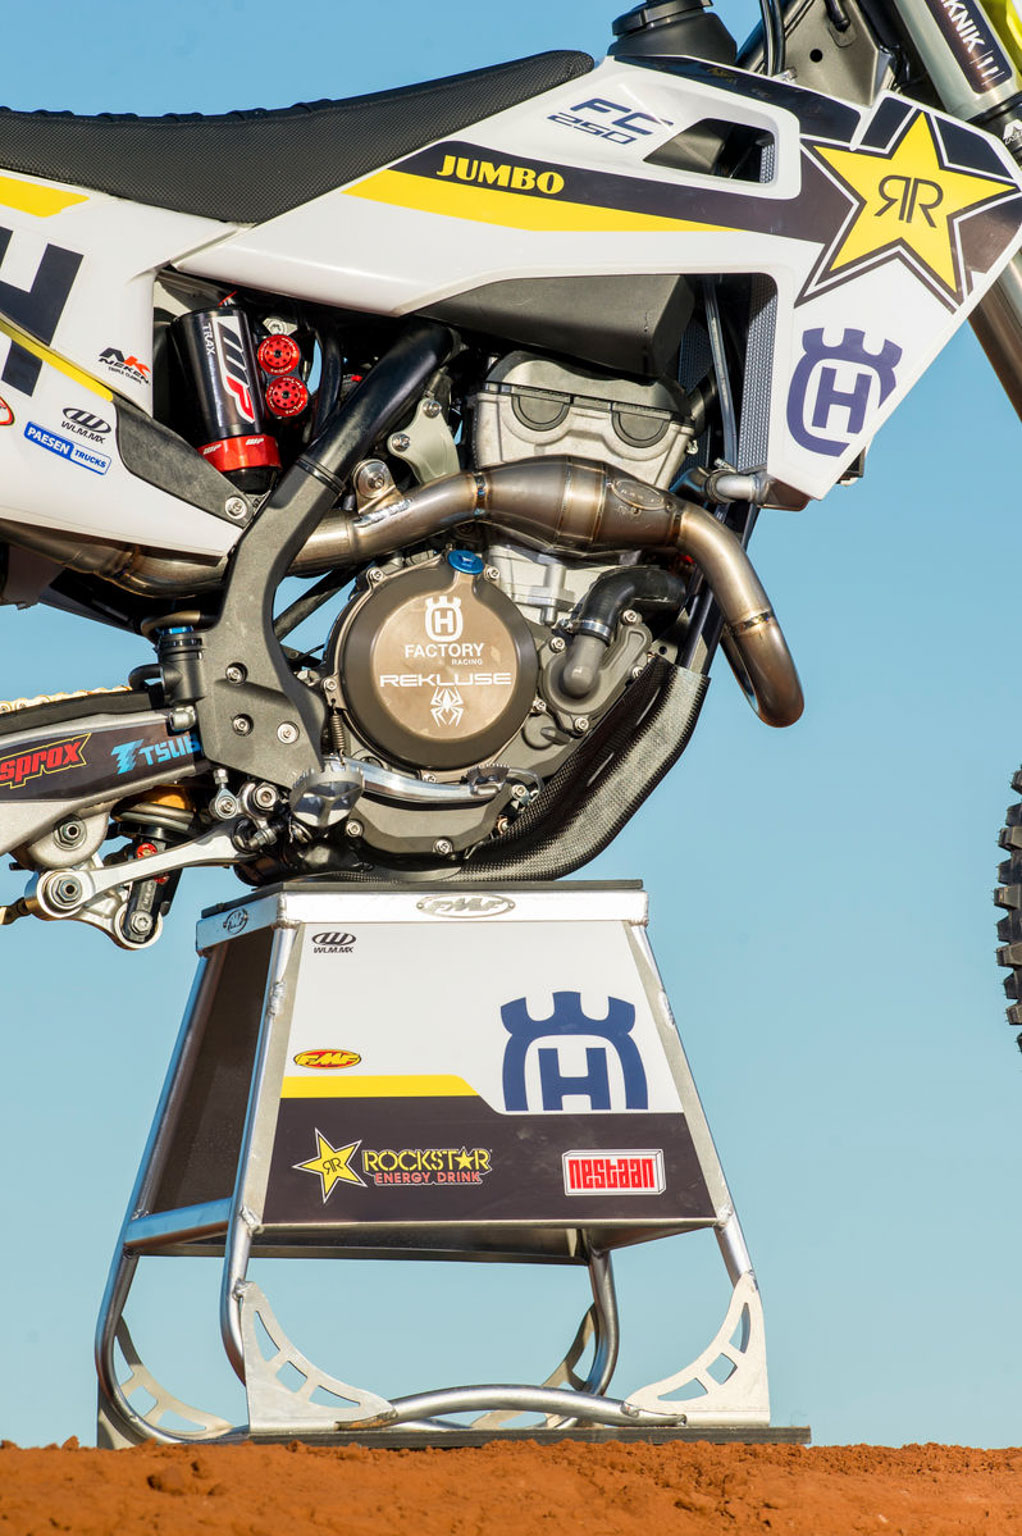 42437_Parts_Rockstar Energy Husqvarna MX2 Factory Racing_shotbybavo_23